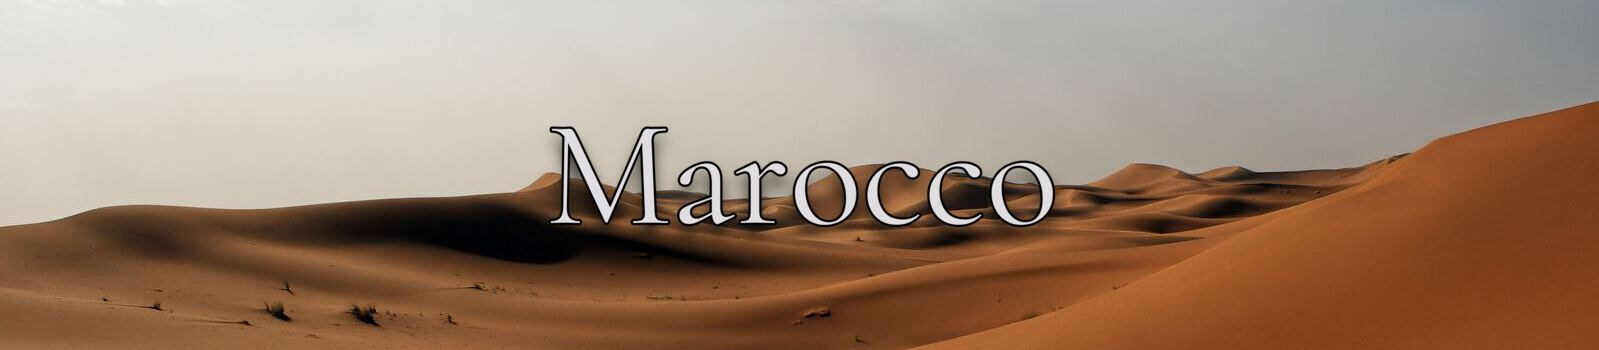 Marocco Africa